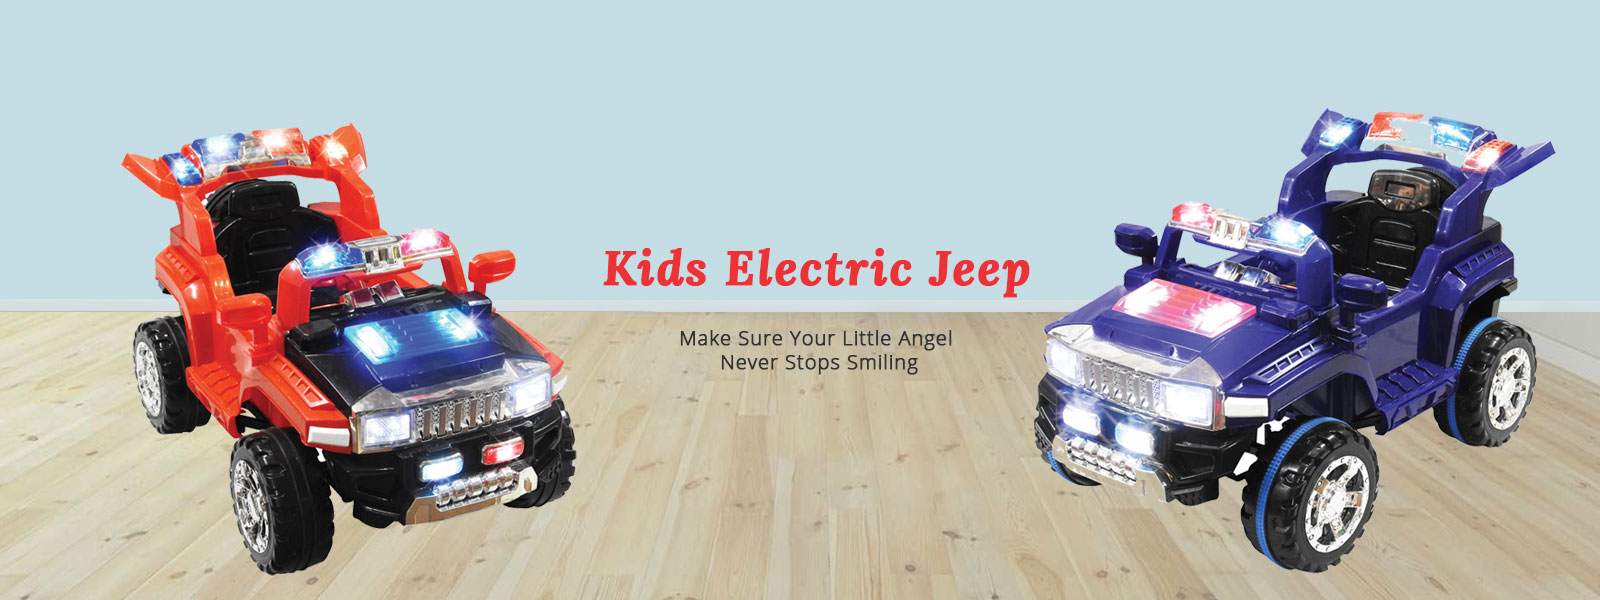 Kids Electric Jeep Manufacturers in Cuttack